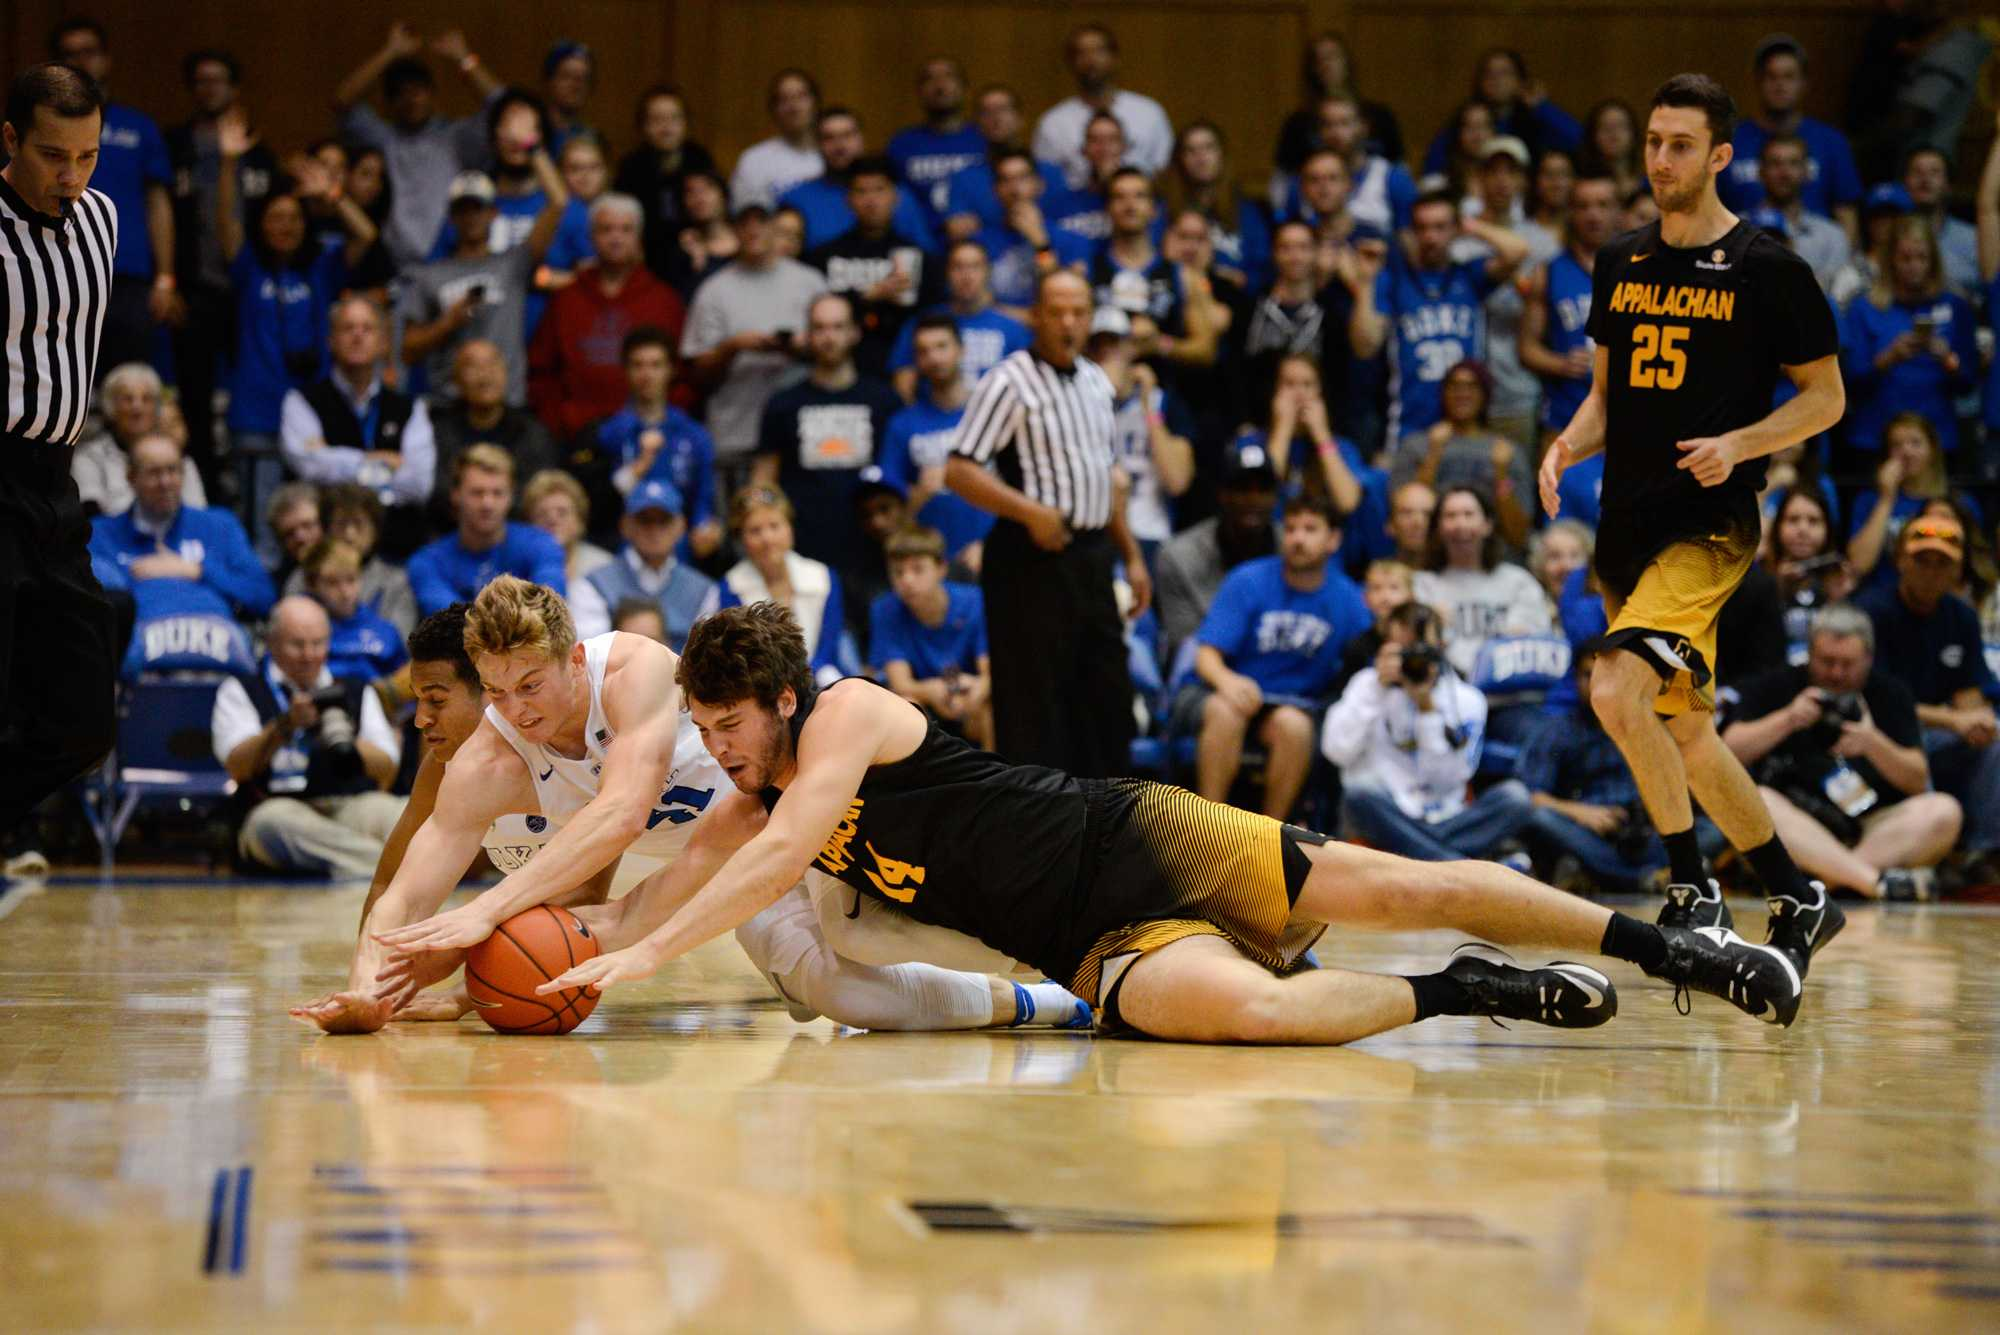 Sophomore  Bennett Holley fights for the ball with a Duke defender. App fell 93-58